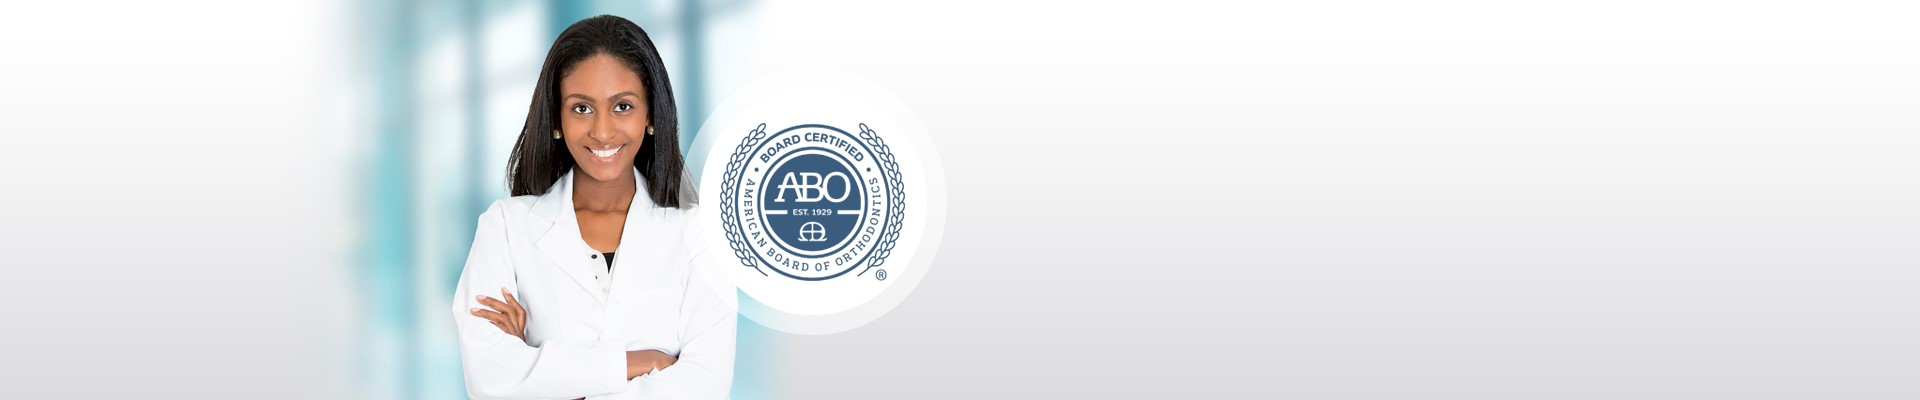 American board of orthodontics put your certification to work for you fandeluxe Image collections